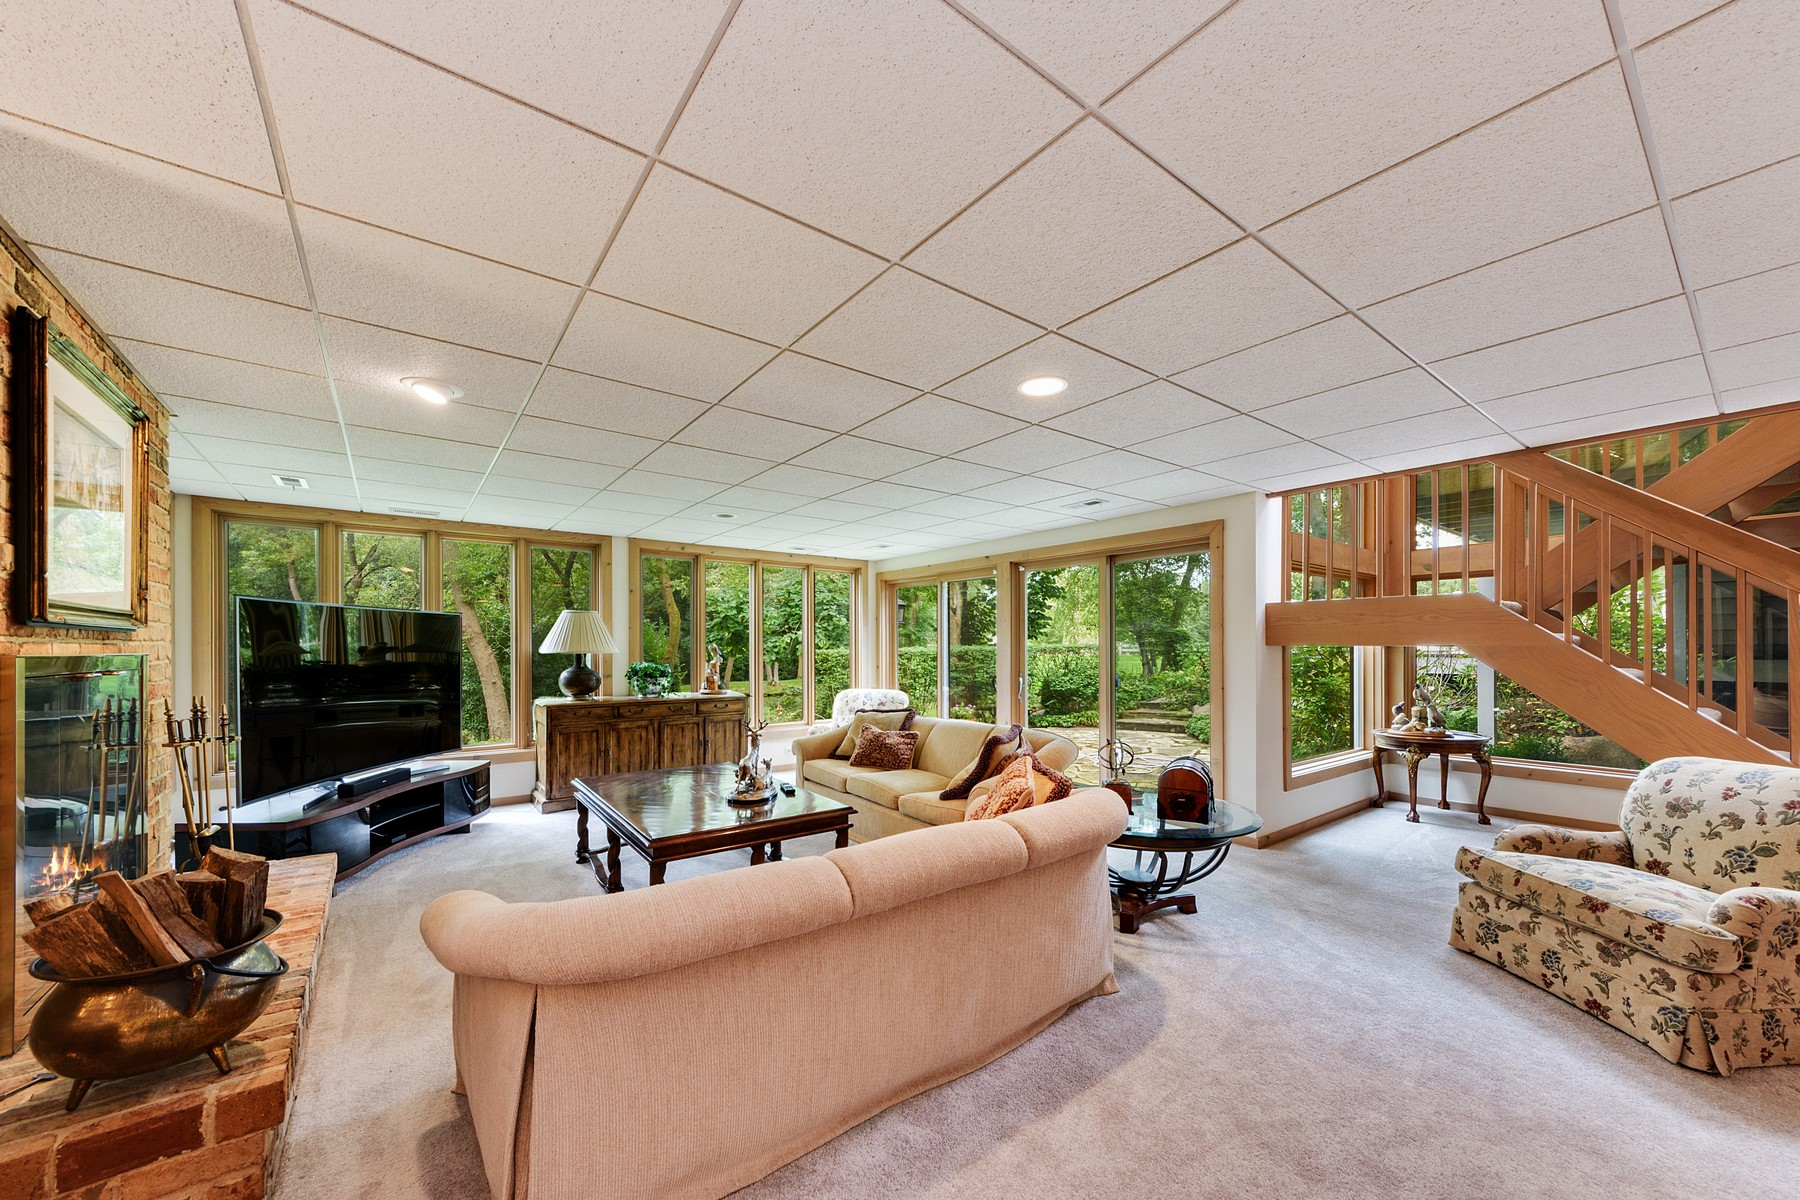 Additional photo for property listing at Tons of updates 9 S Wynstone Drive North Barrington, Illinois 60010 United States